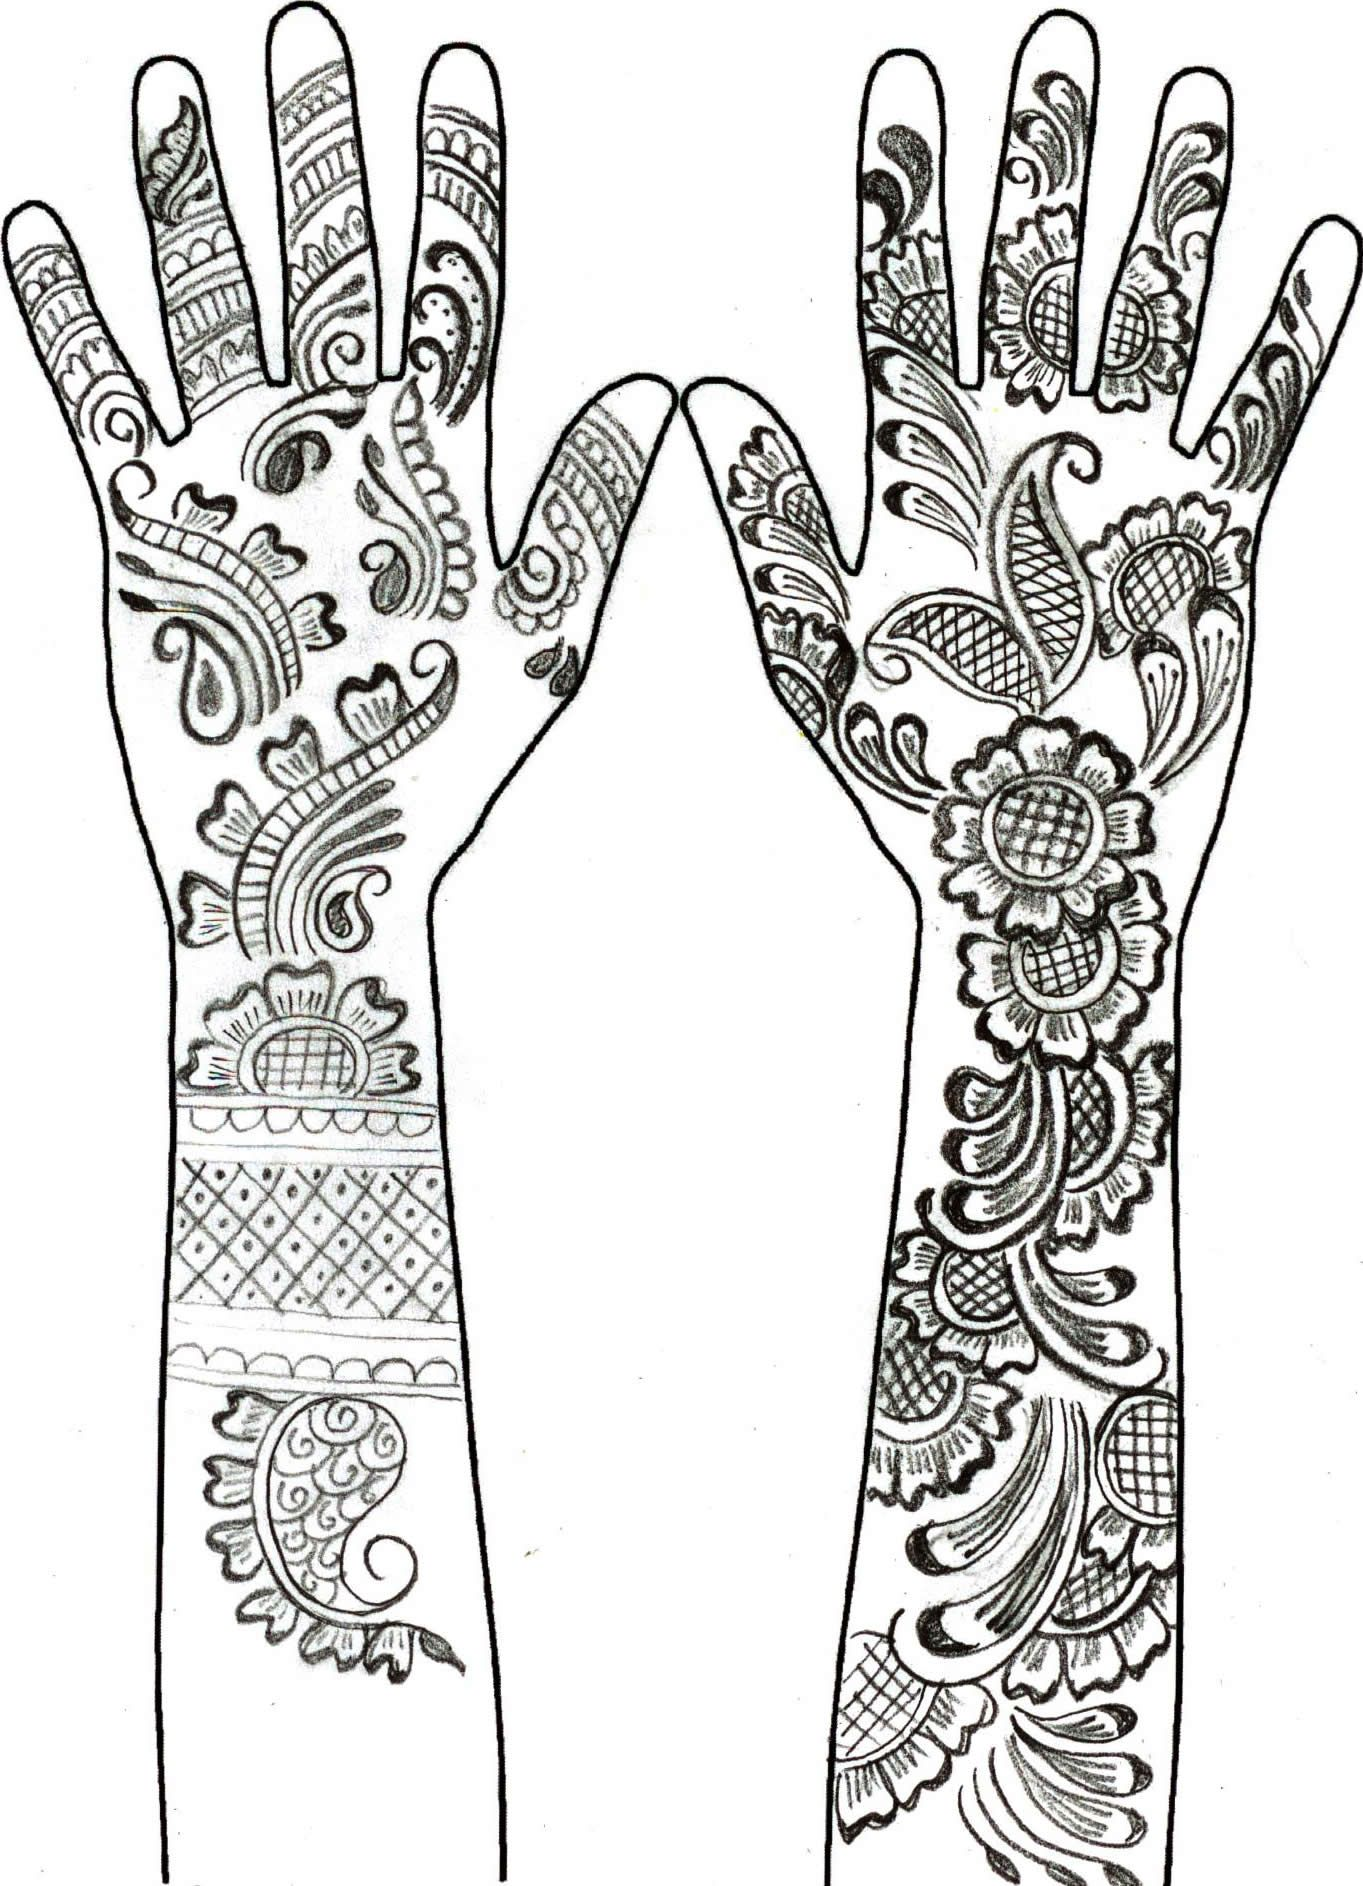 Coloring pages of mehndi hand pattern - Adult Coloring Page Arab World Henna Hand Tattoos 12